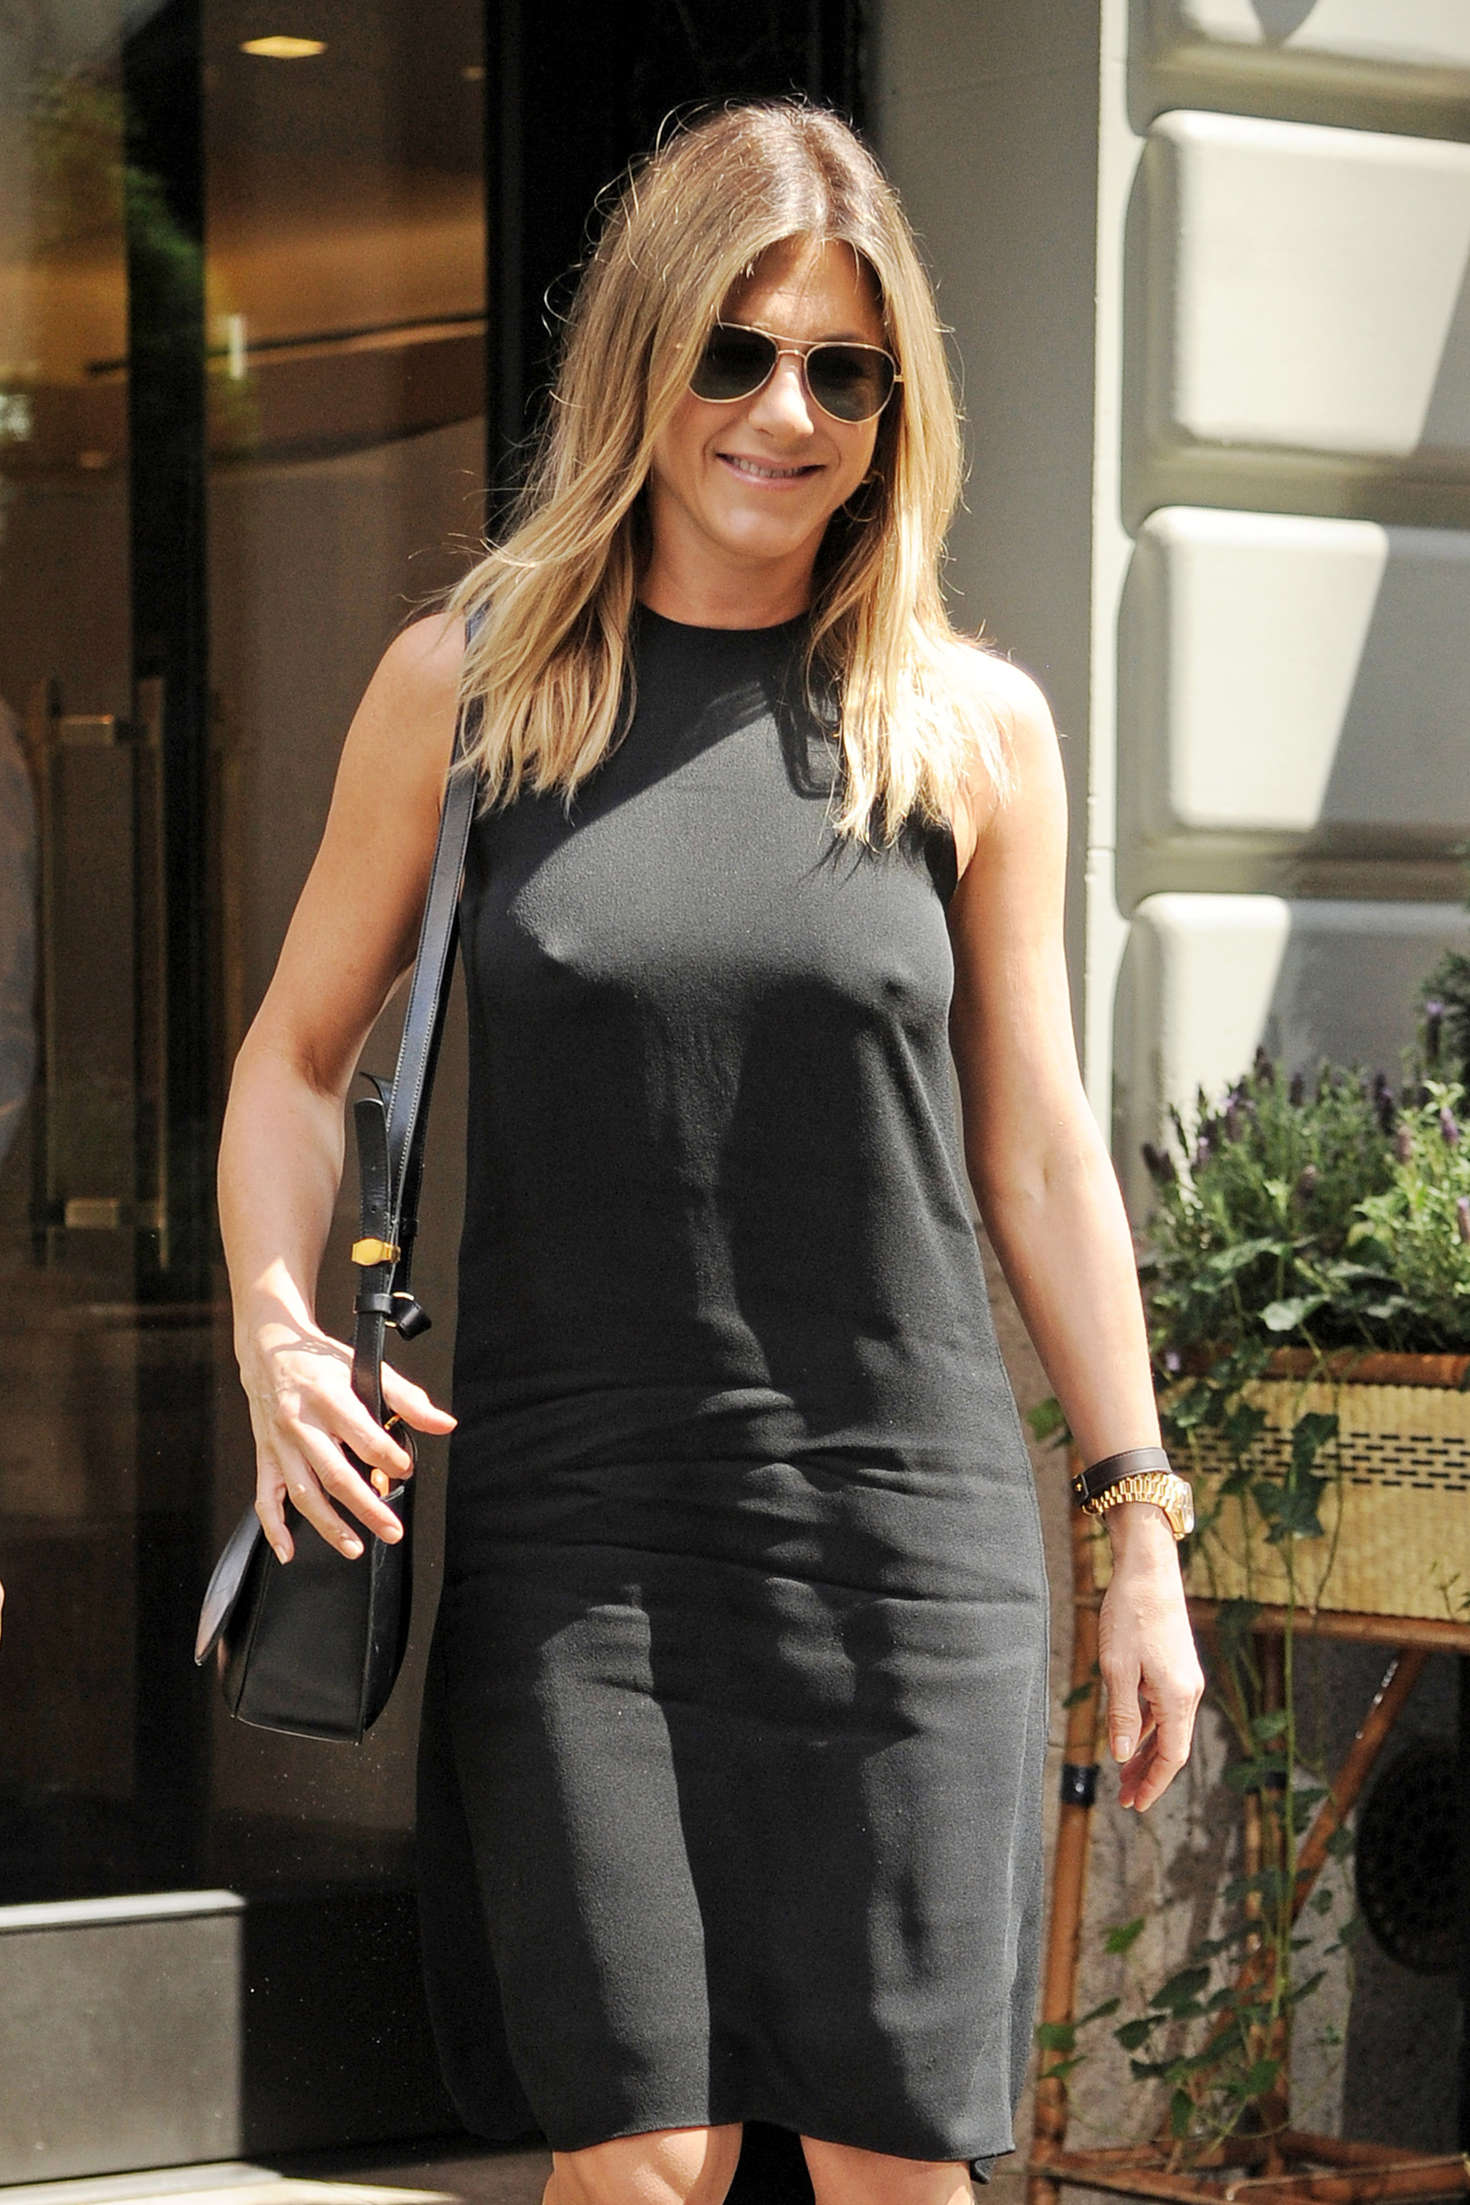 Jennifer Aniston in Black Mini Dress Out in NYC